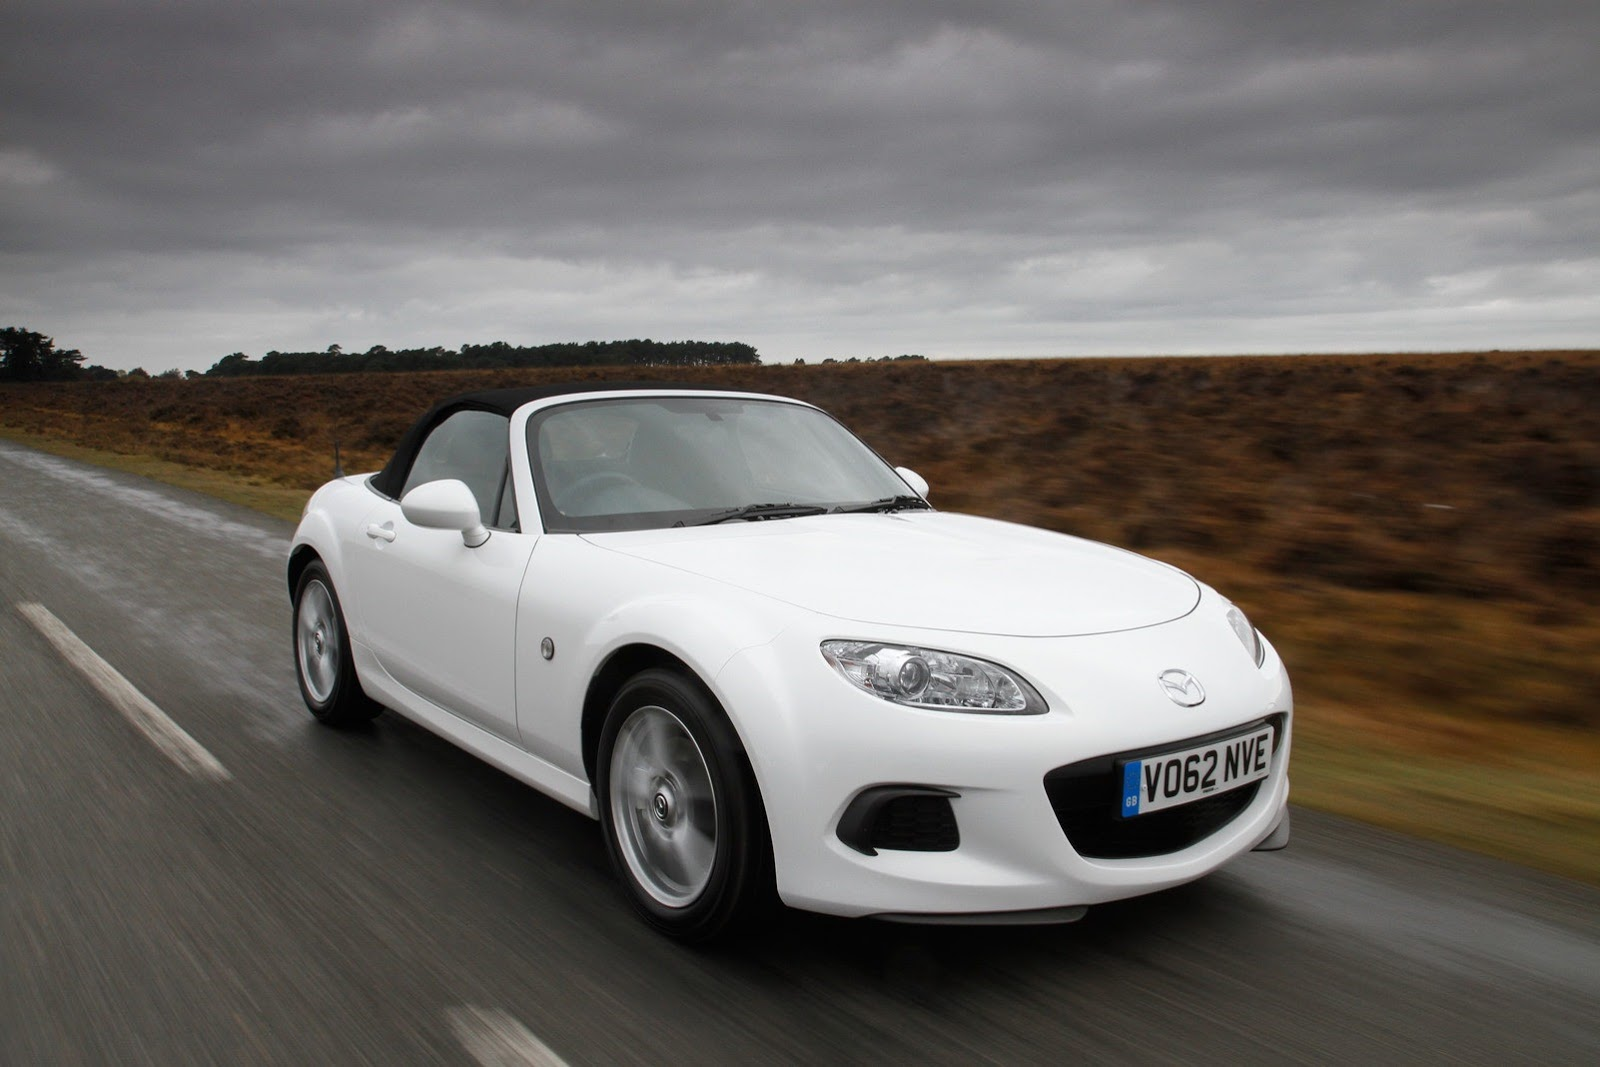 2013 Mazda MX-5 priced from £18,495 in the United Kingdom